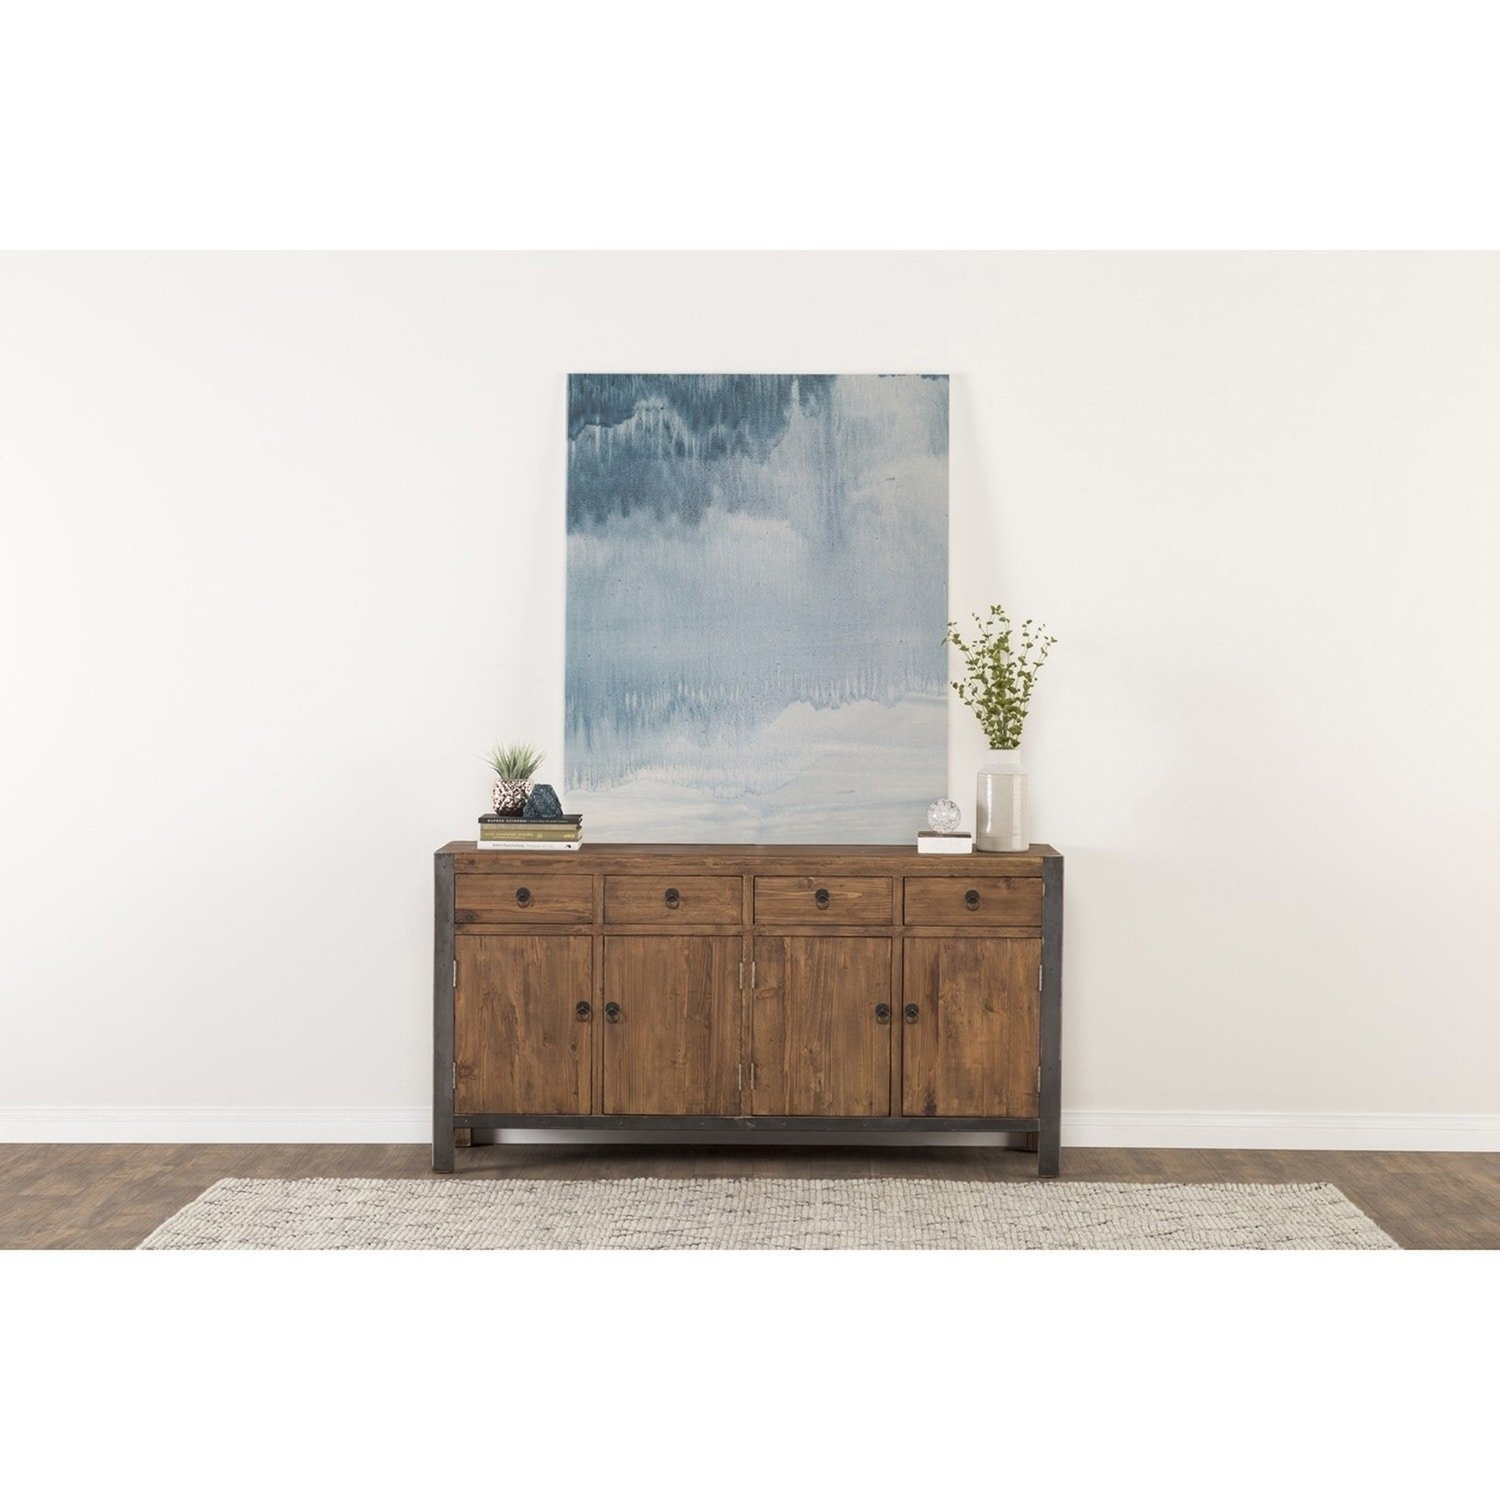 Shop Willow Reclaimed Wood And Iron 70-Inch Buffetkosas Home in Reclaimed Pine & Iron 72 Inch Sideboards (Image 25 of 30)